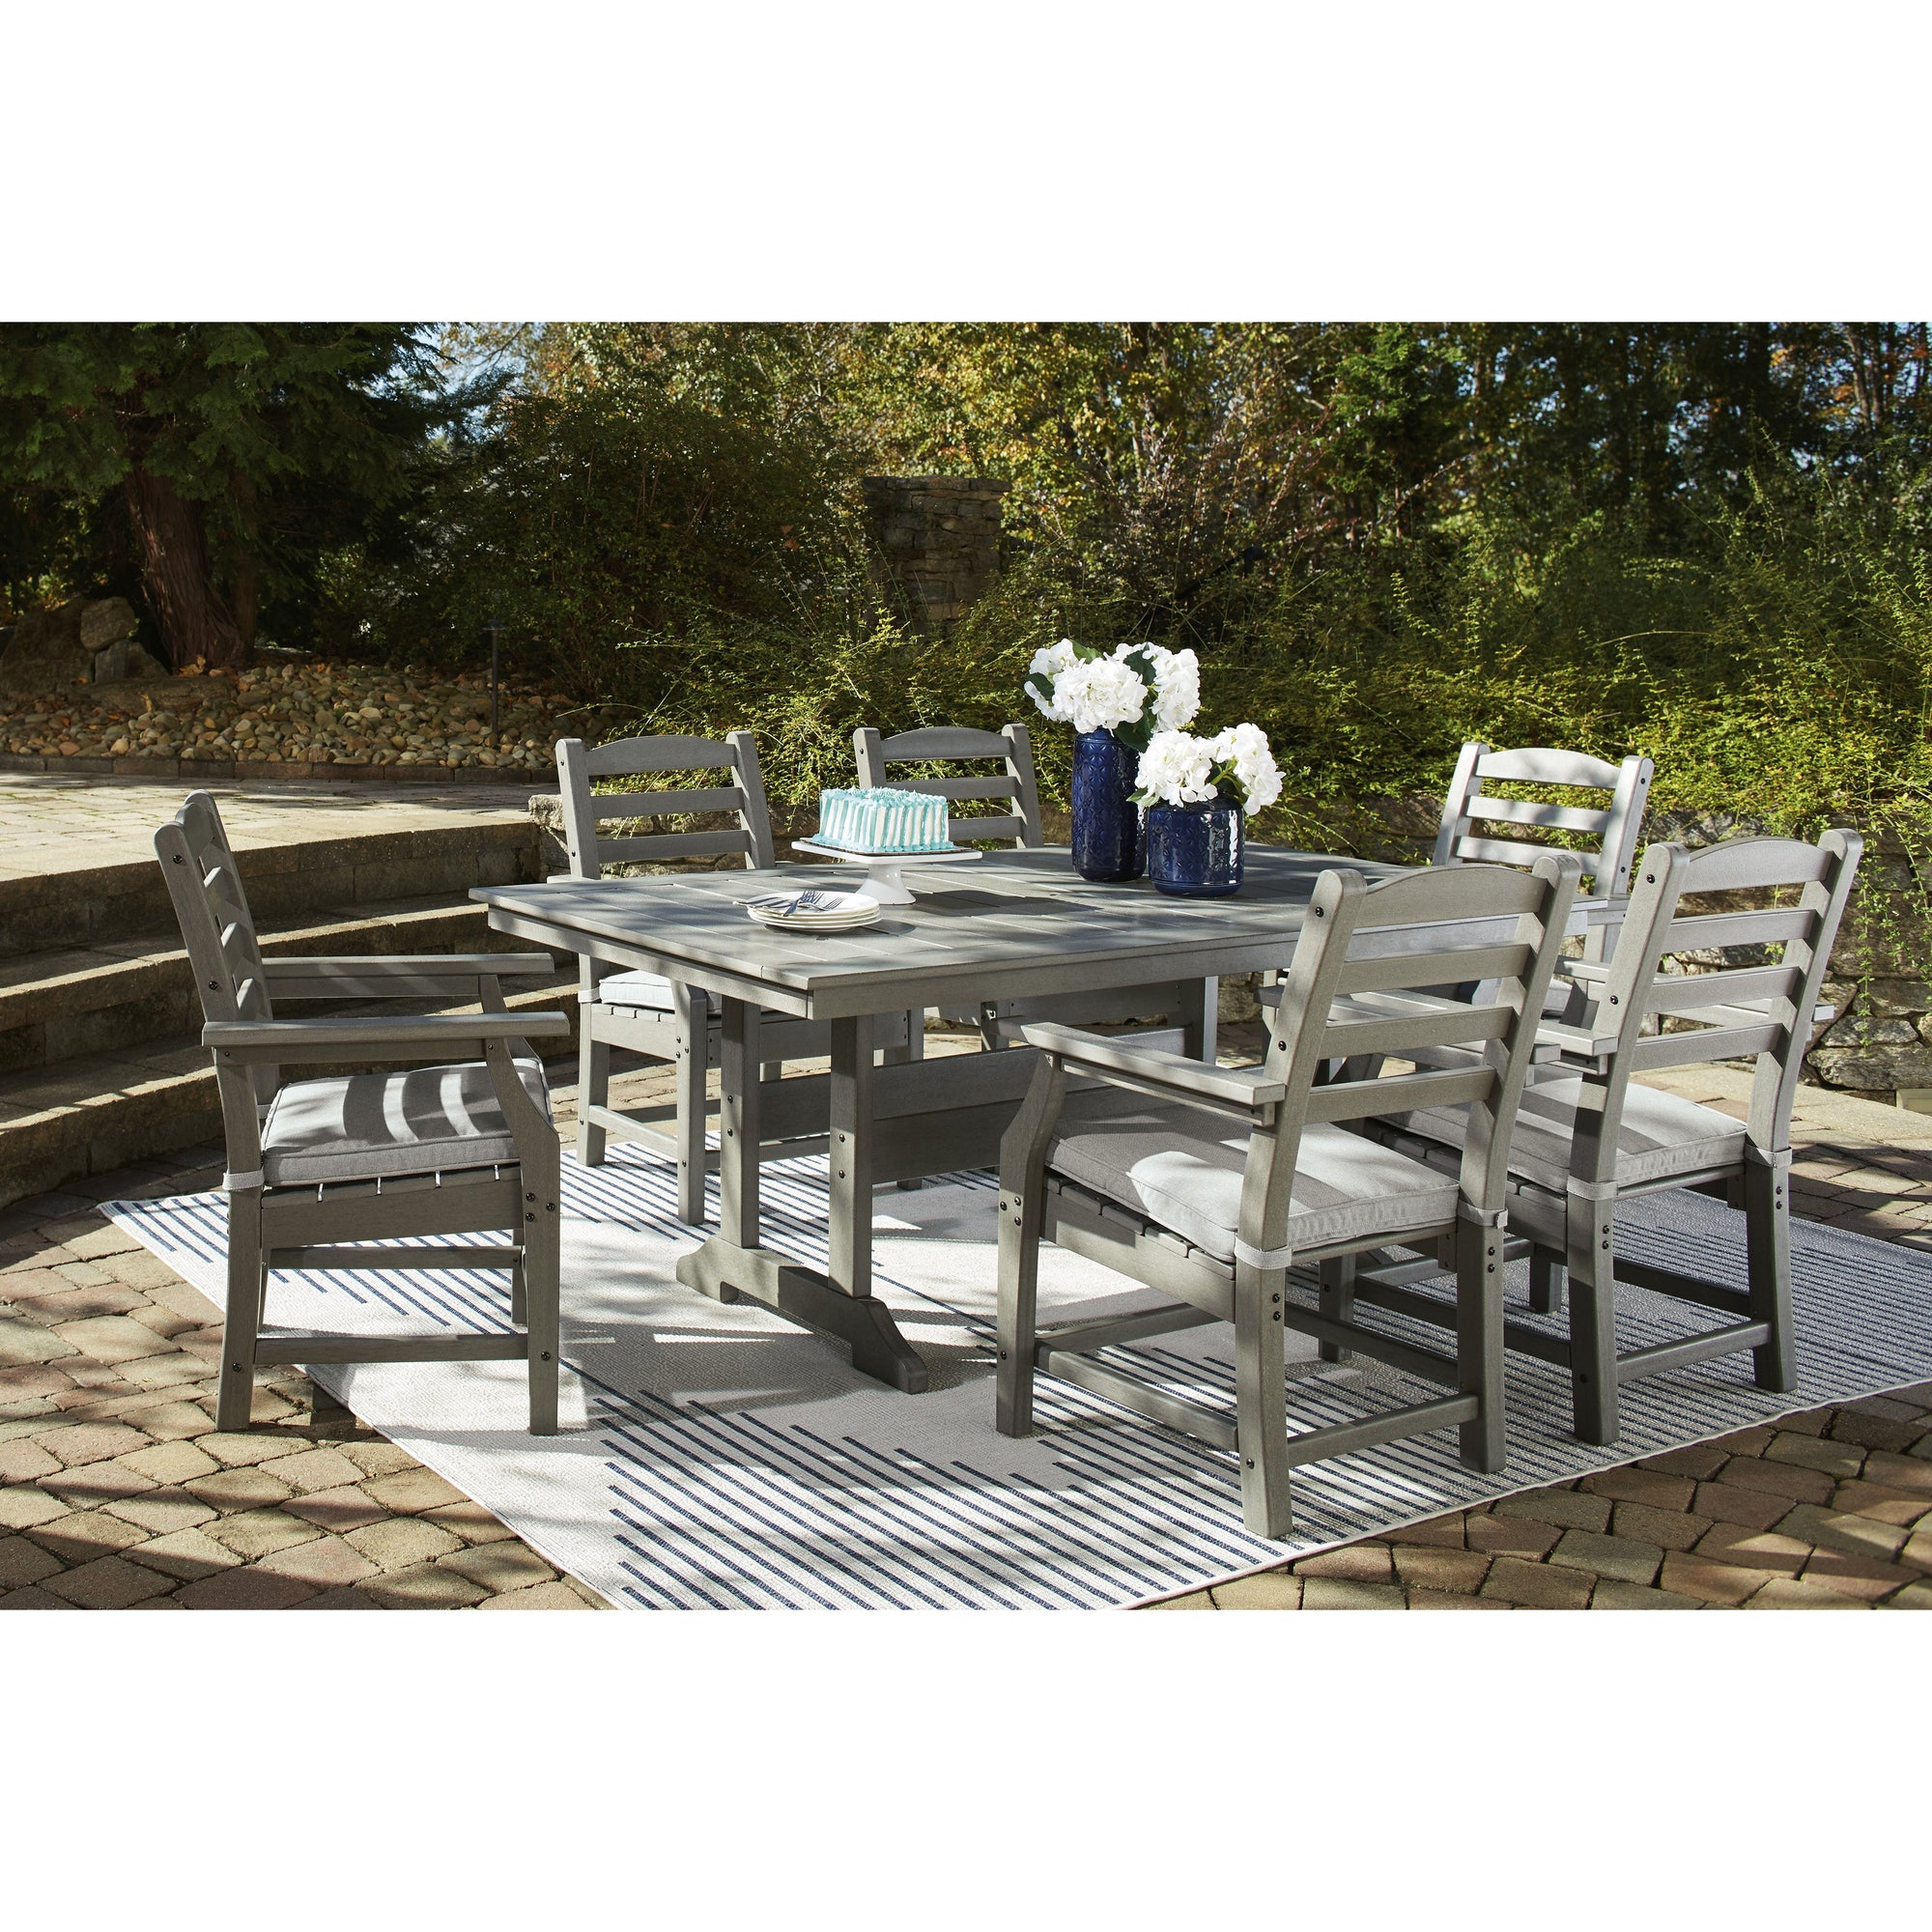 poly-outdoor slatted dining set